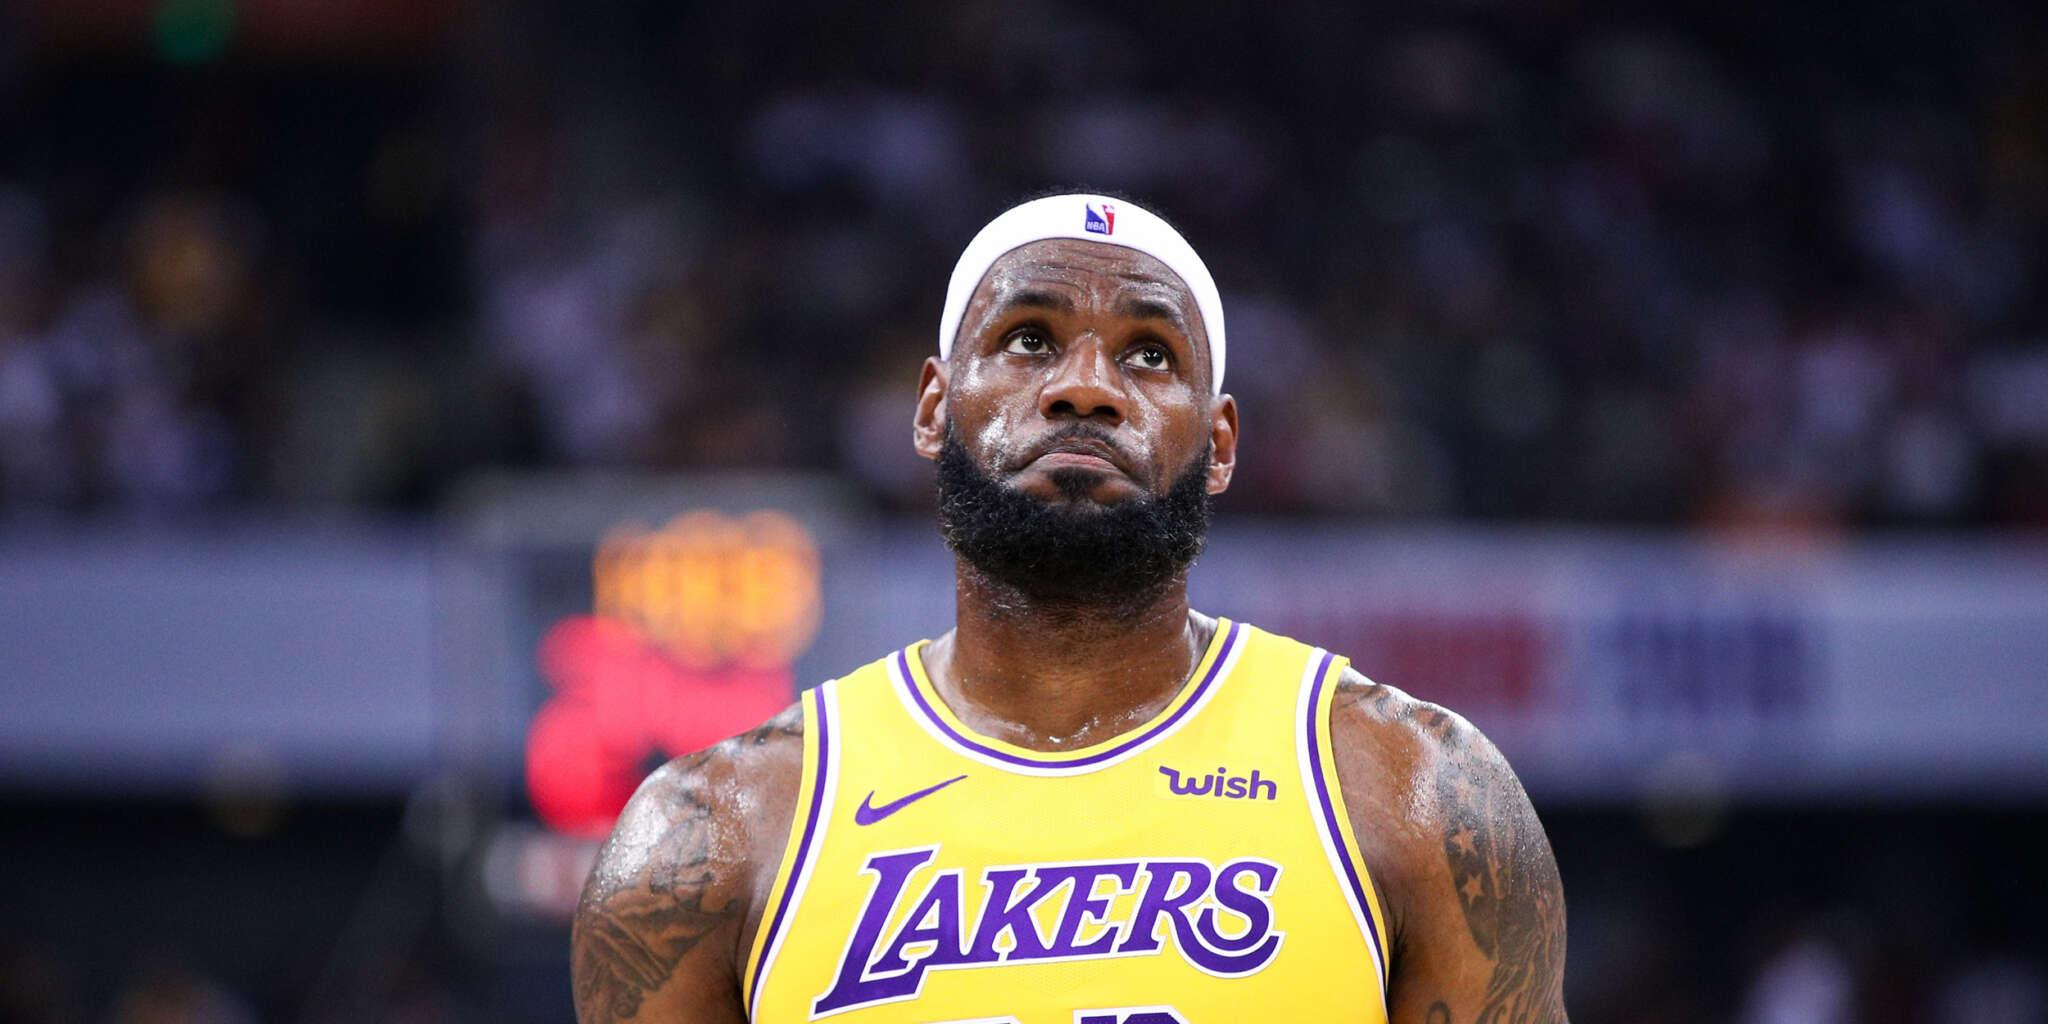 LeBron James Addressed The Recent Incident That Led To Heckler Being Ejected